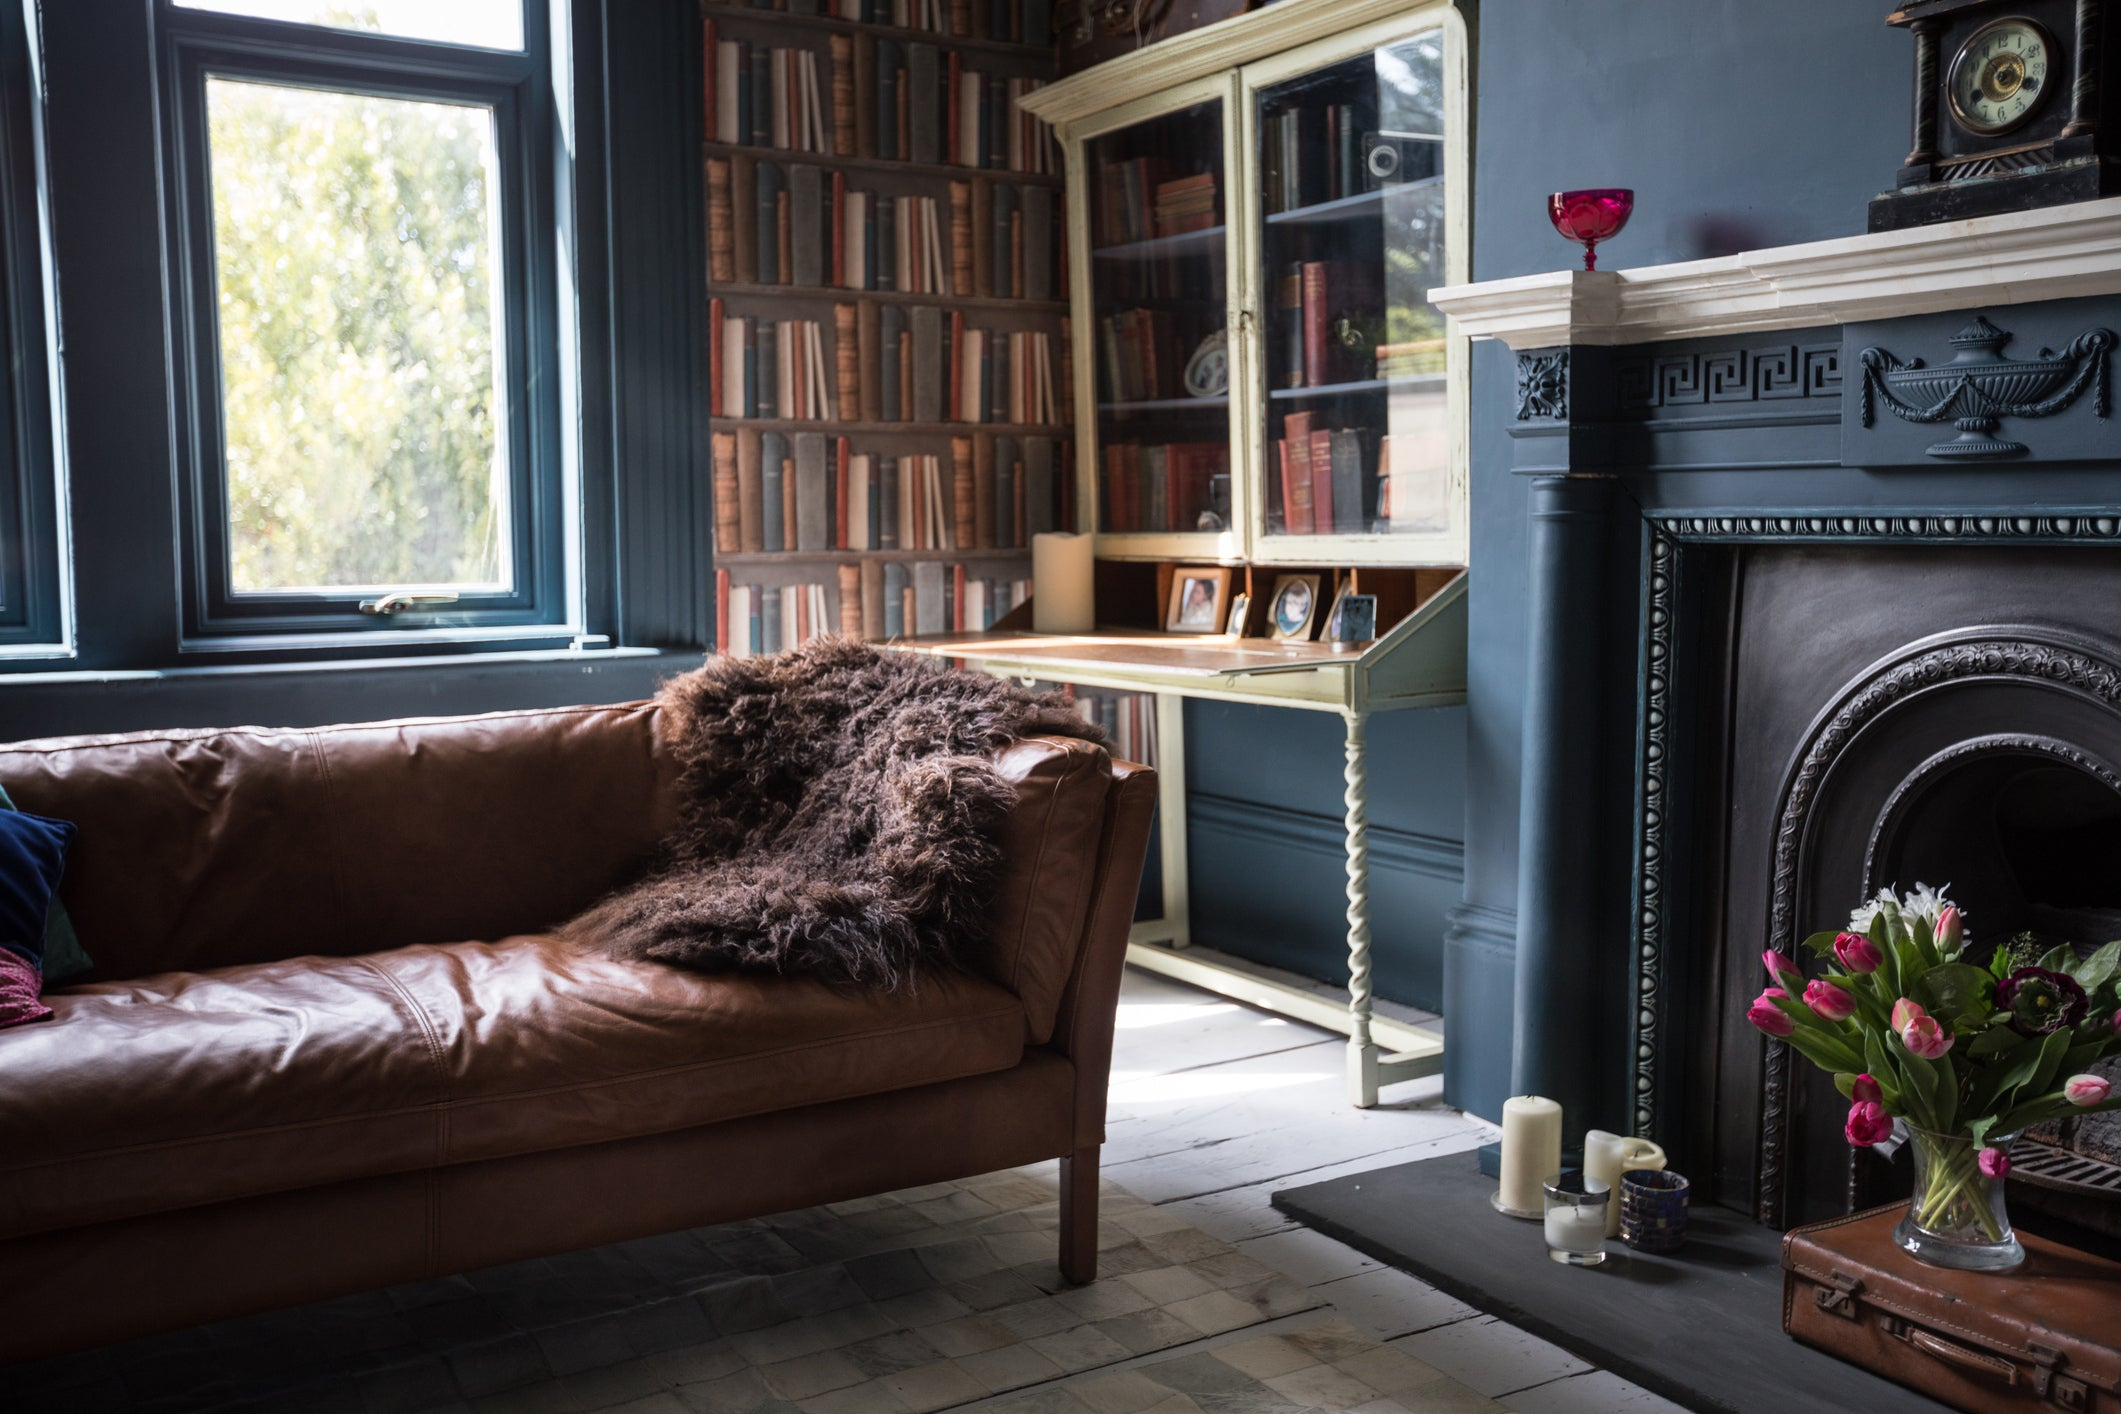 Black living room, with black fireplace and black window frames, then a dark brown leather sofa and bookshelf in the corner